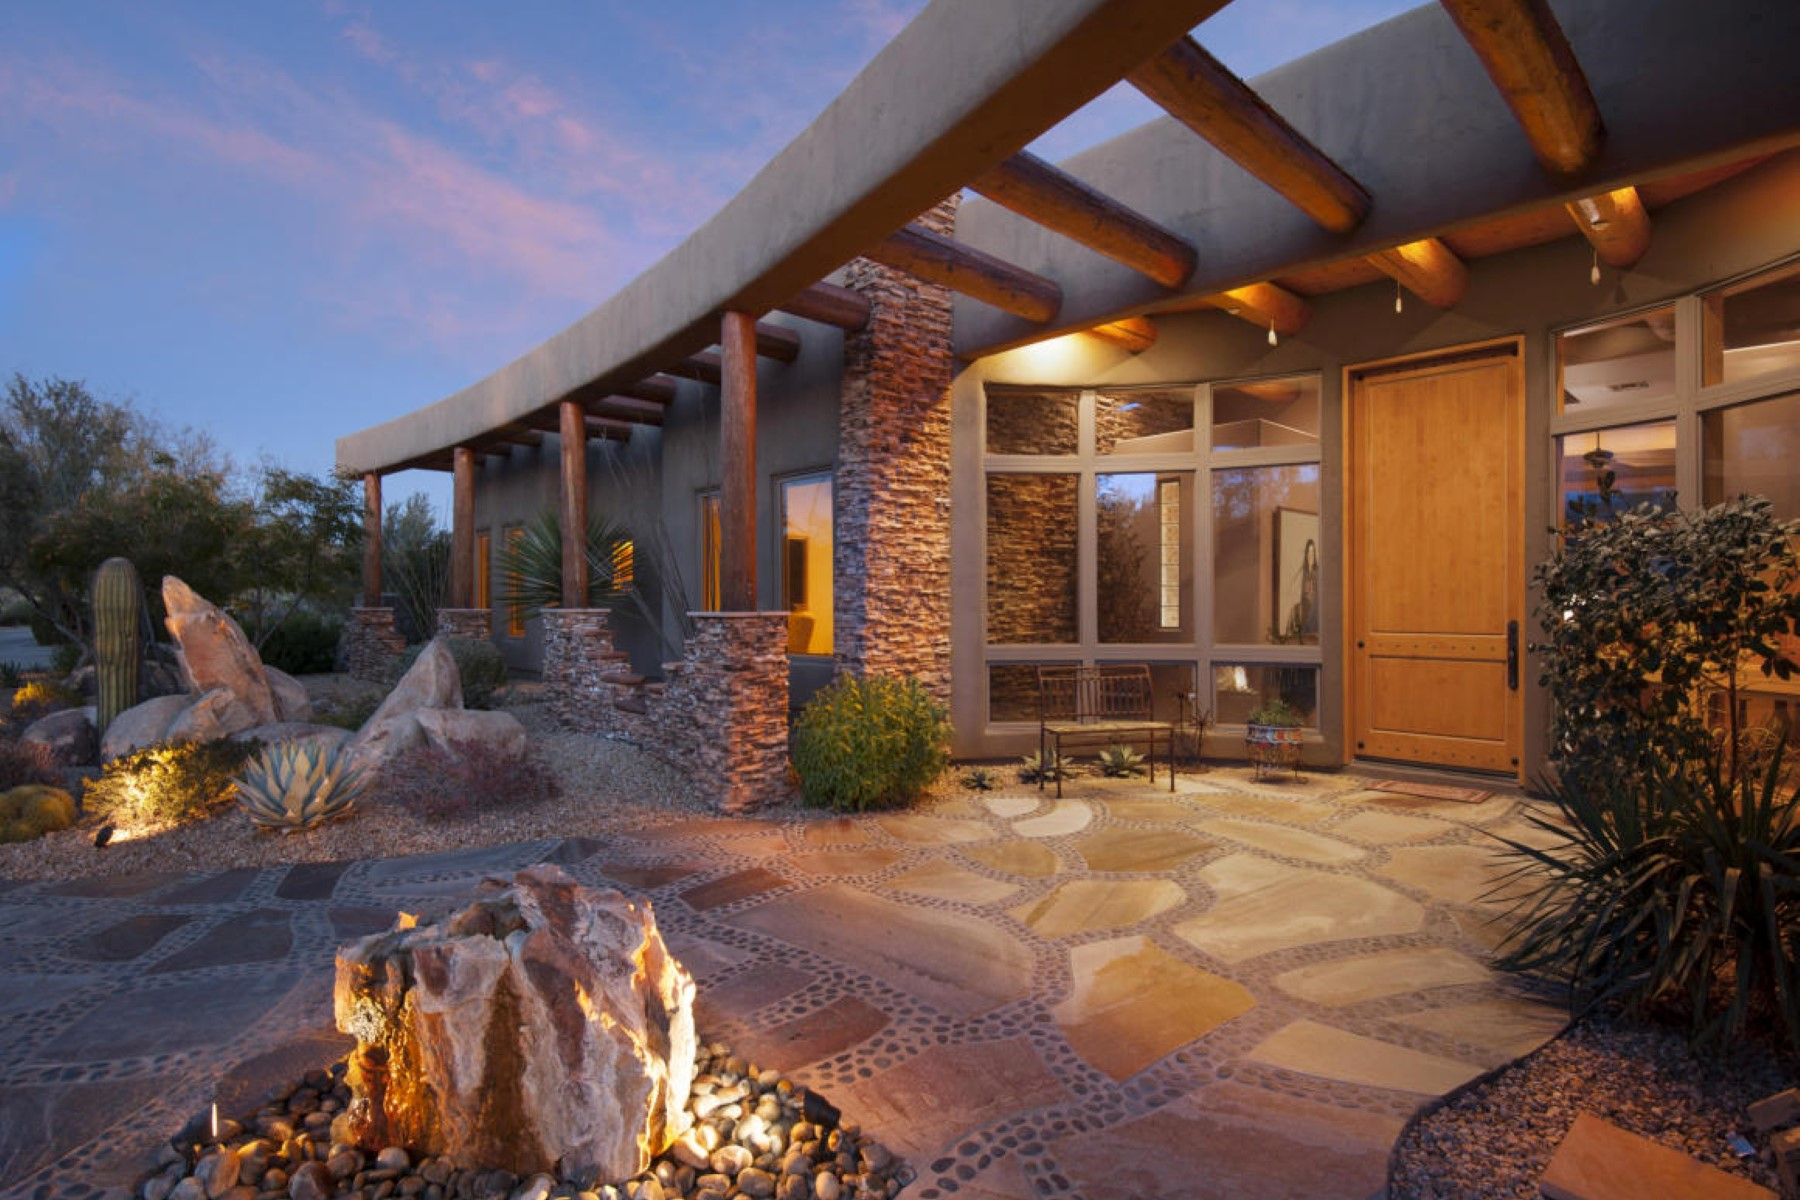 Tek Ailelik Ev için Satış at Southwest luxury living on 1.9 ac in Stone Canyon 1083 W Vistoso Highlands Drive Oro Valley, Arizona, 85755 Amerika Birleşik Devletleri